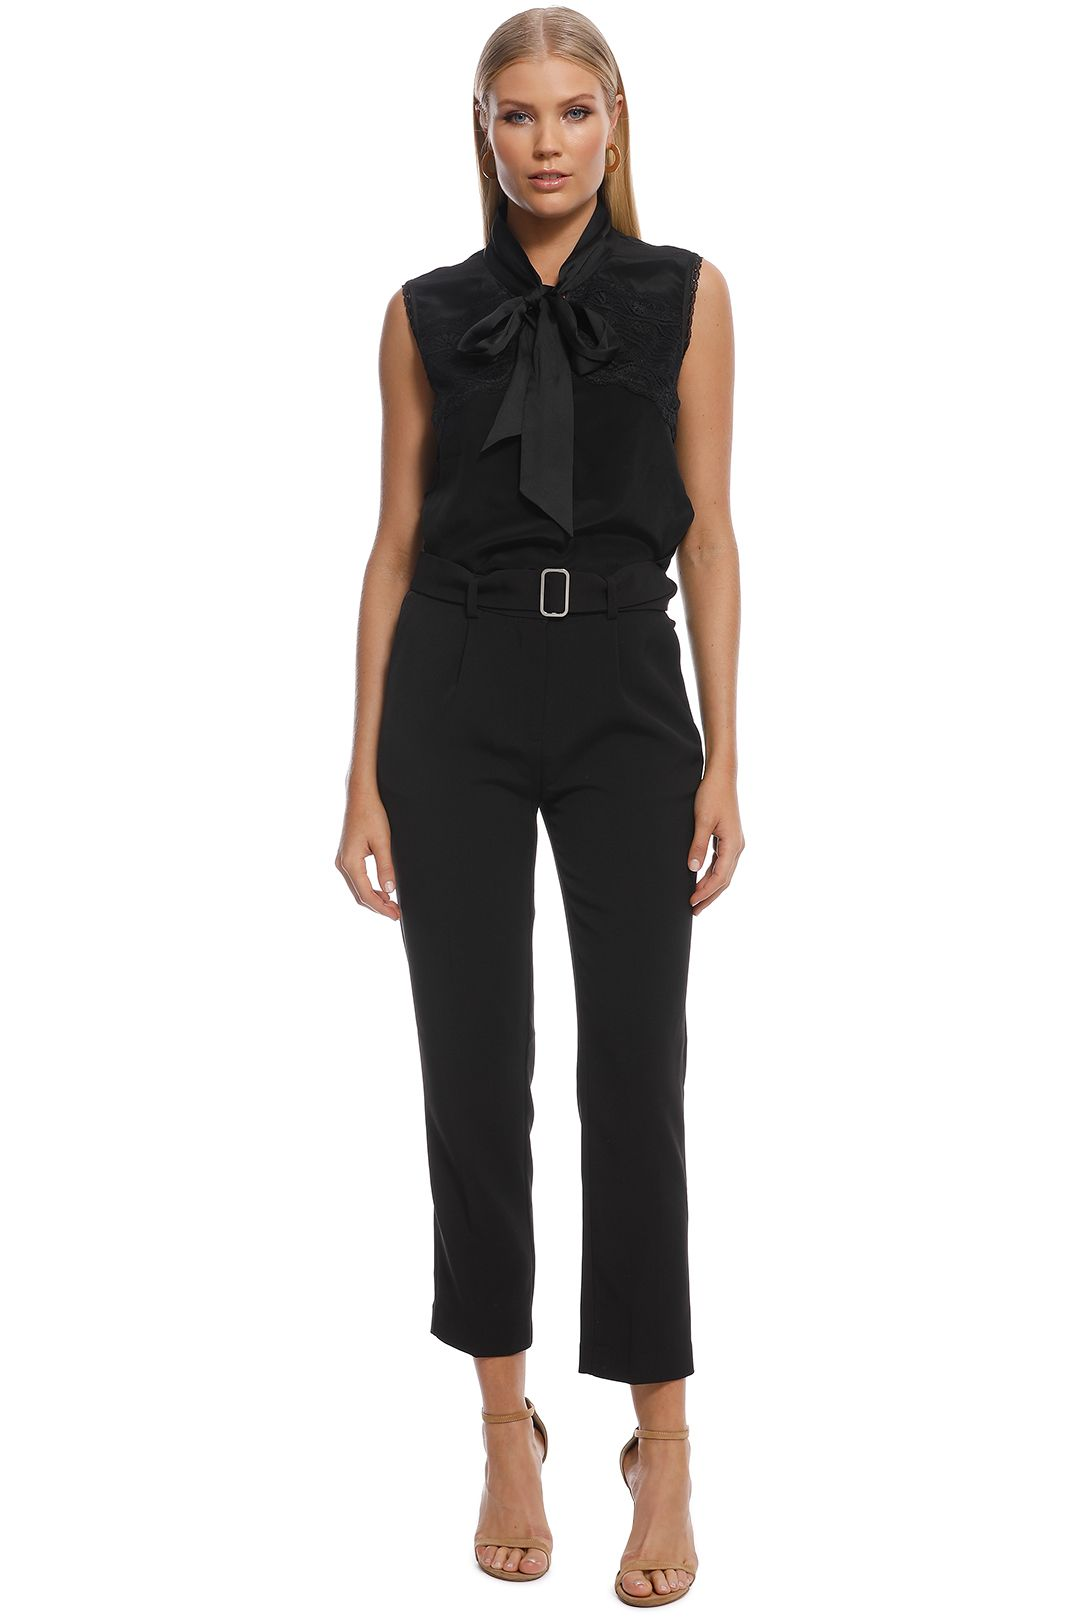 Friend of Audrey - Joseph Trousers - Black - Front